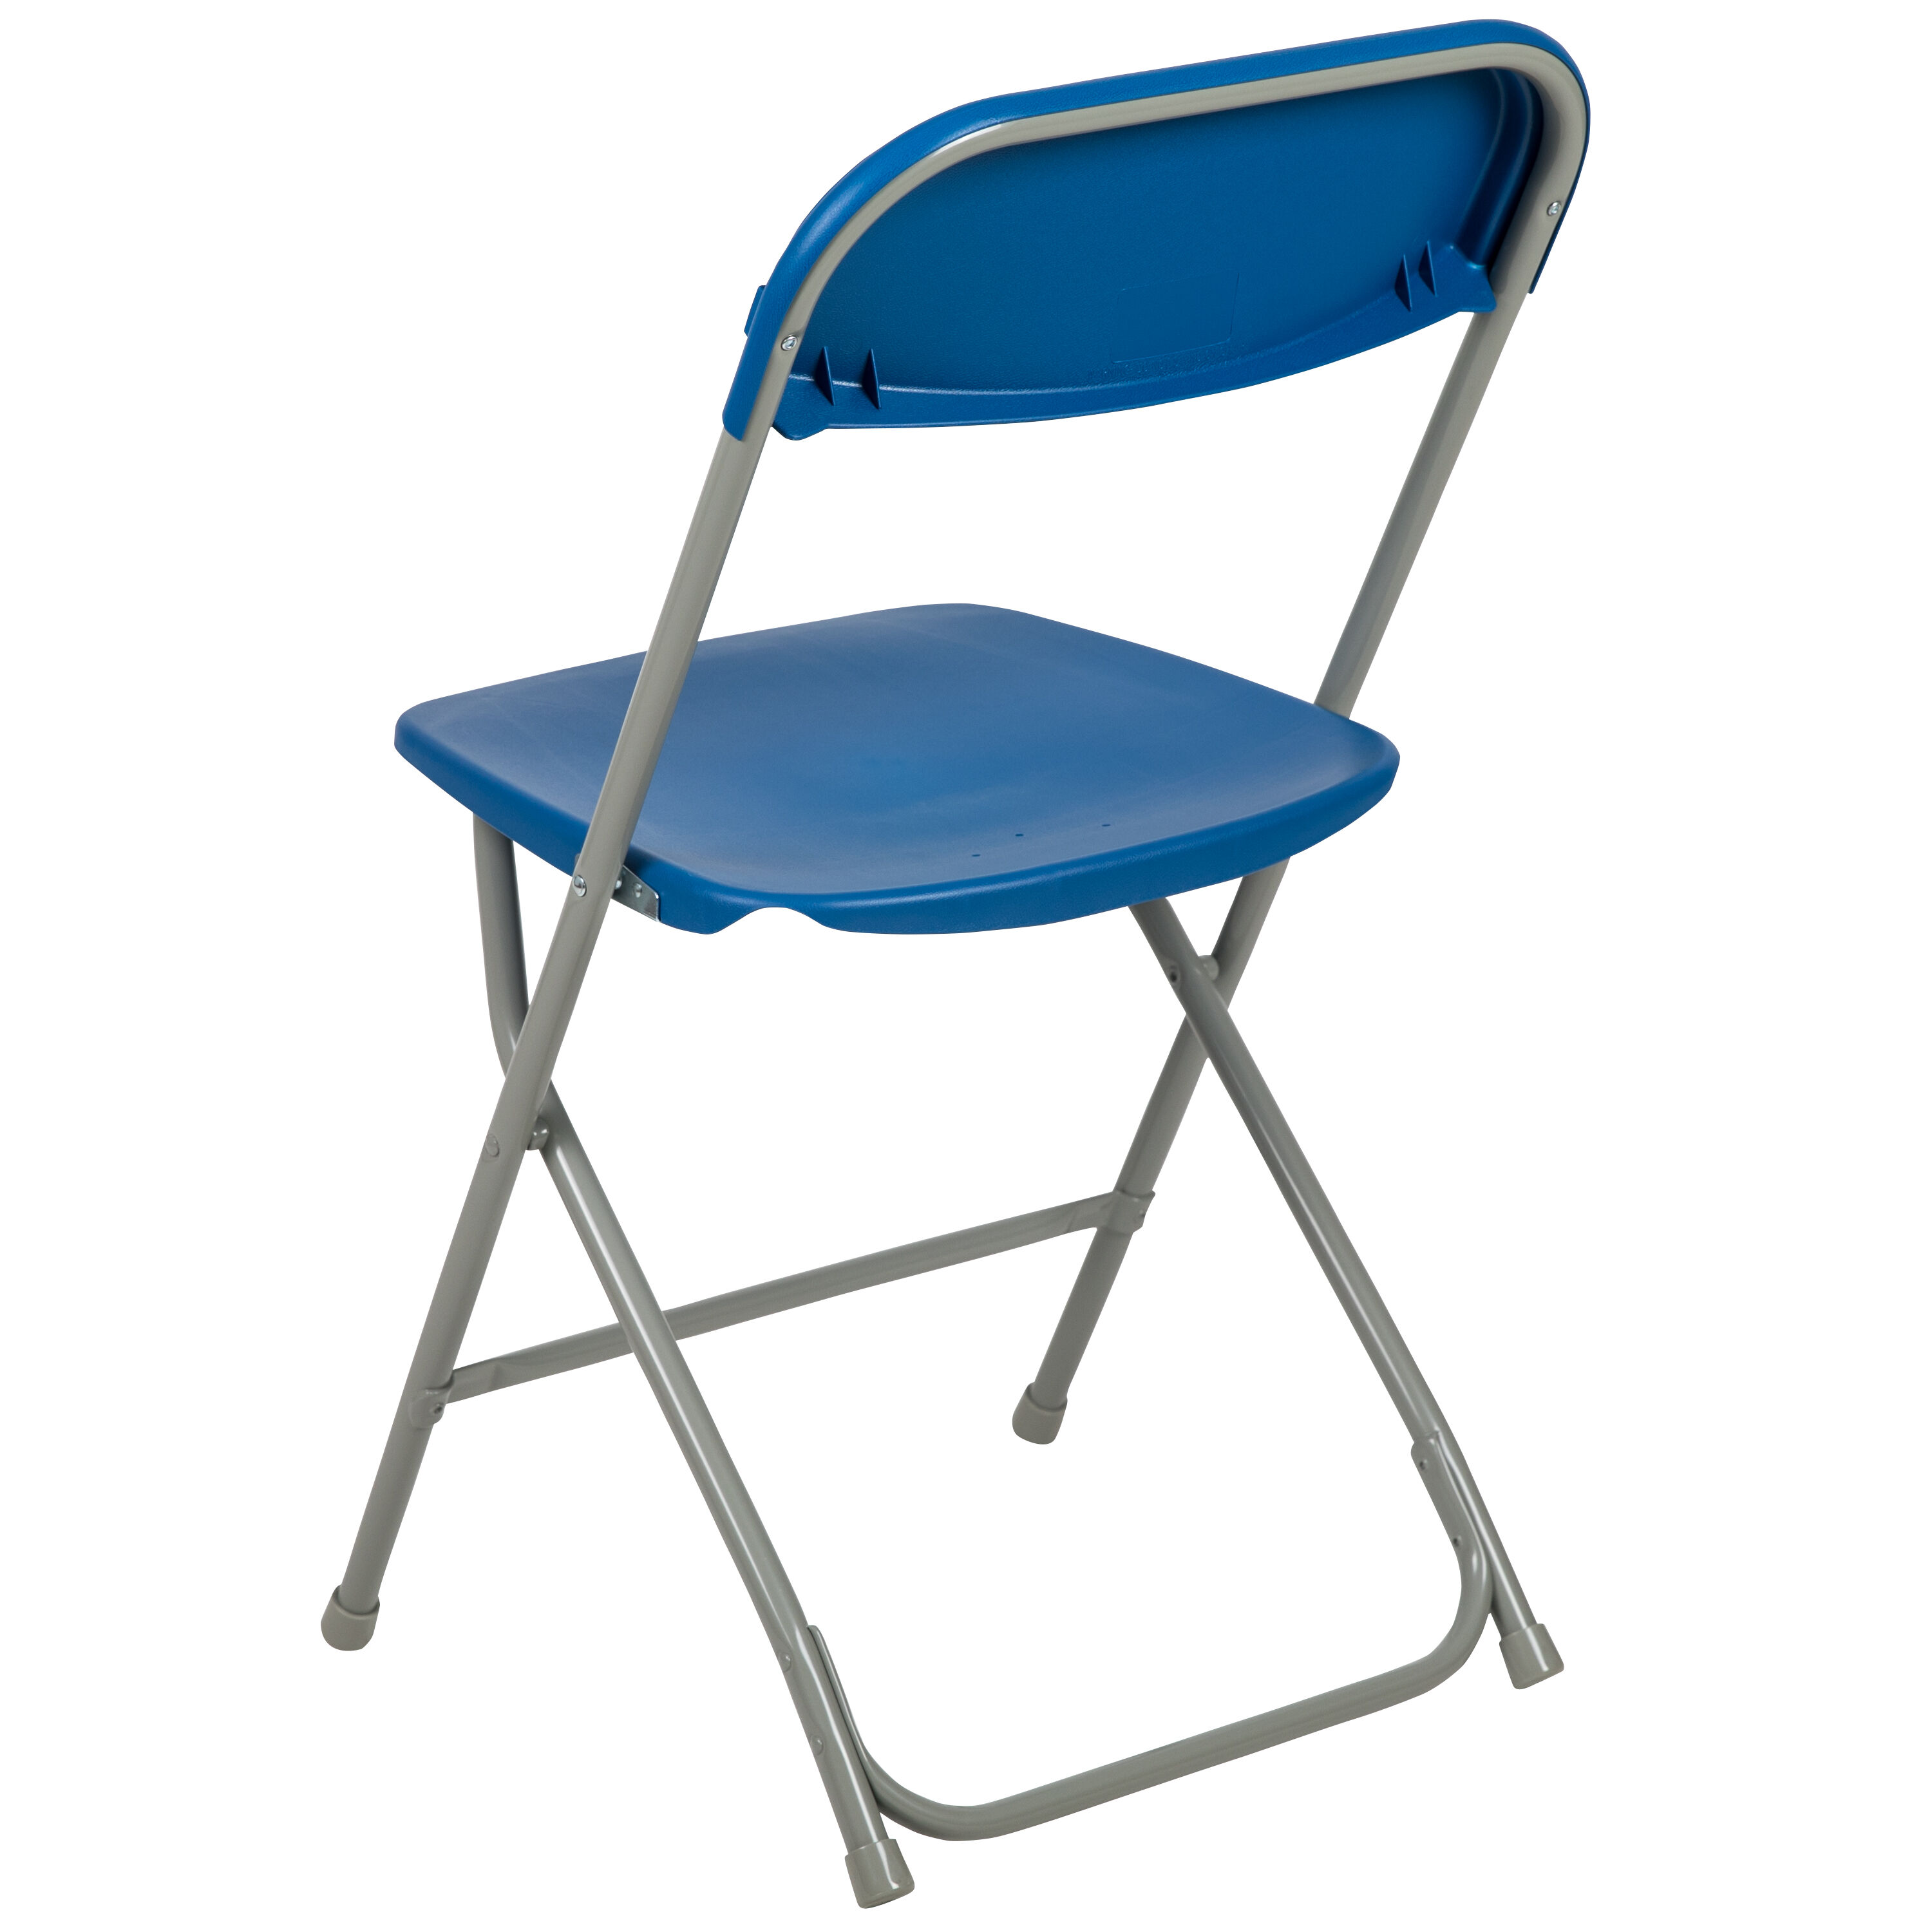 Blue Folding Chairs Blue Plastic Folding Chair Le L 3 Blue Gg